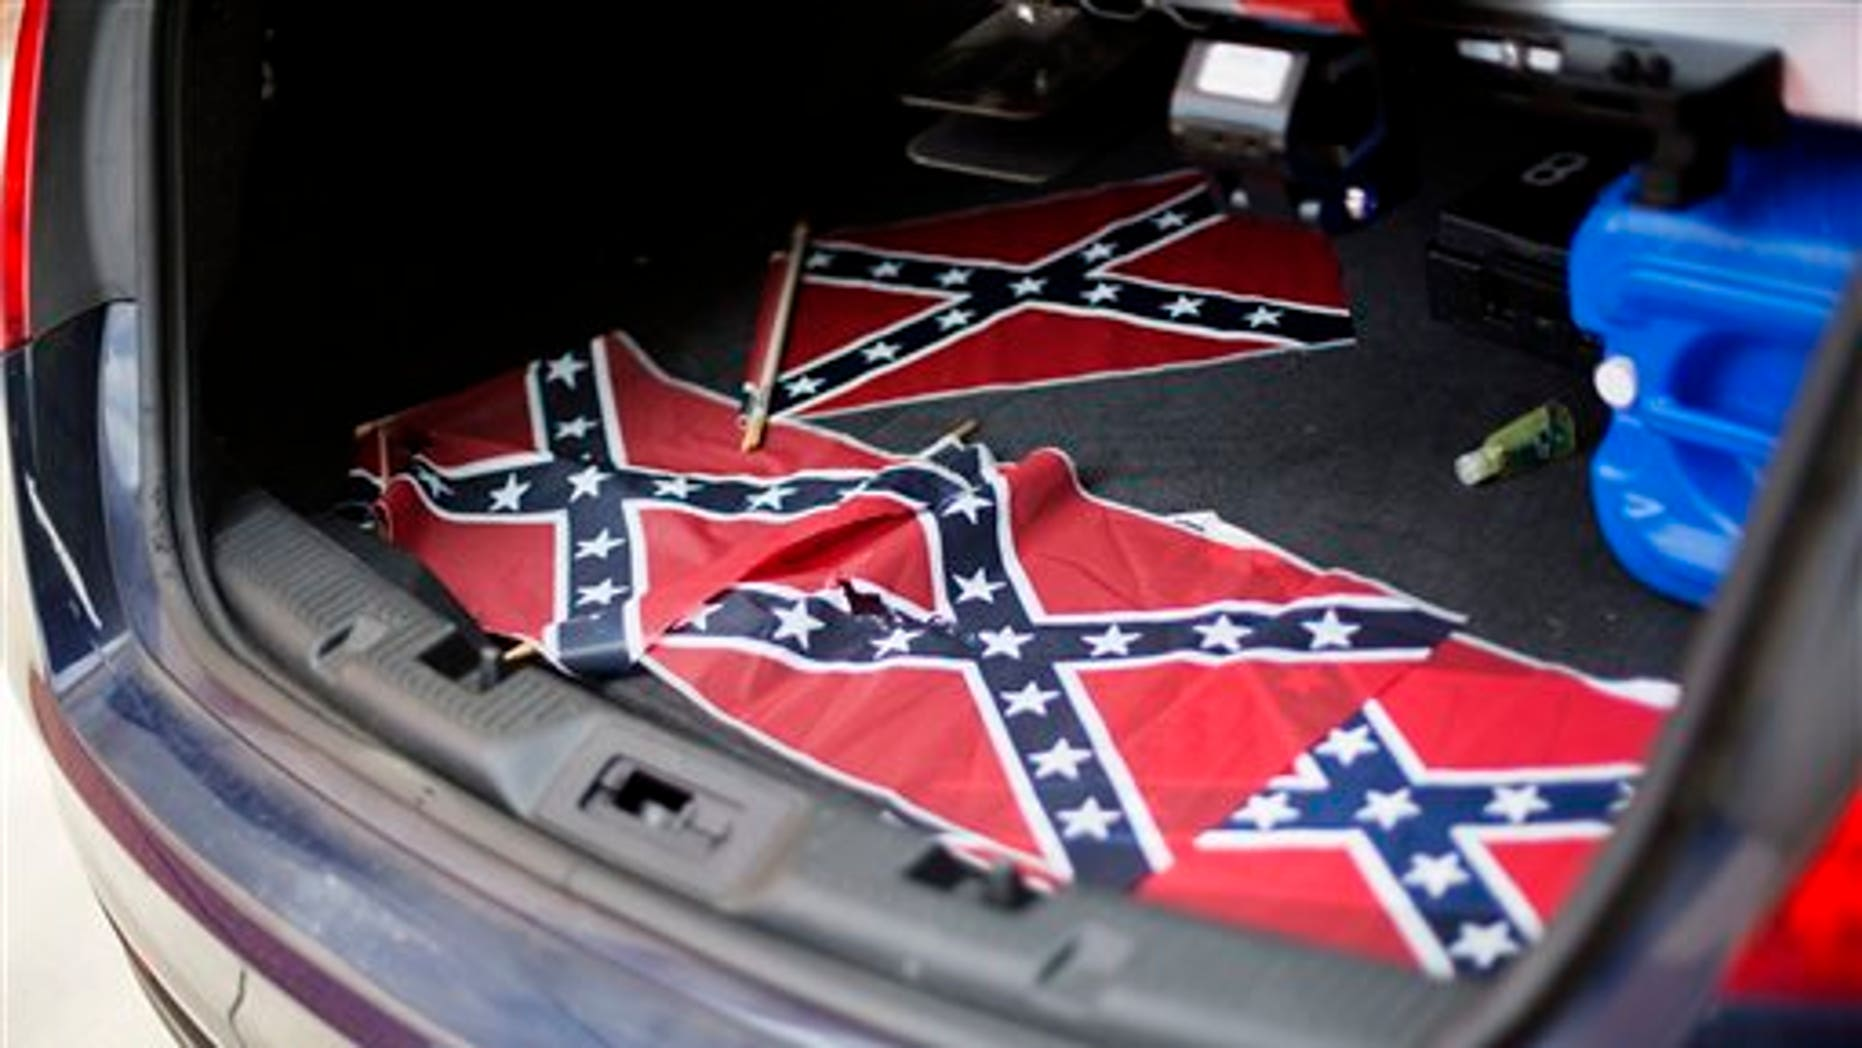 Confederate flags sit in the back of a police car outside Ebenezer Baptist Church Thursday, July 30, 2015, in Atlanta. U.S. authorities are investigating after several Confederate battle flags were discovered near the church and a civil rights center named after Martin Luther King, an iconic leader in the African-American Civil Rights Movement, Thursday morning. (AP Photo/David Goldman)